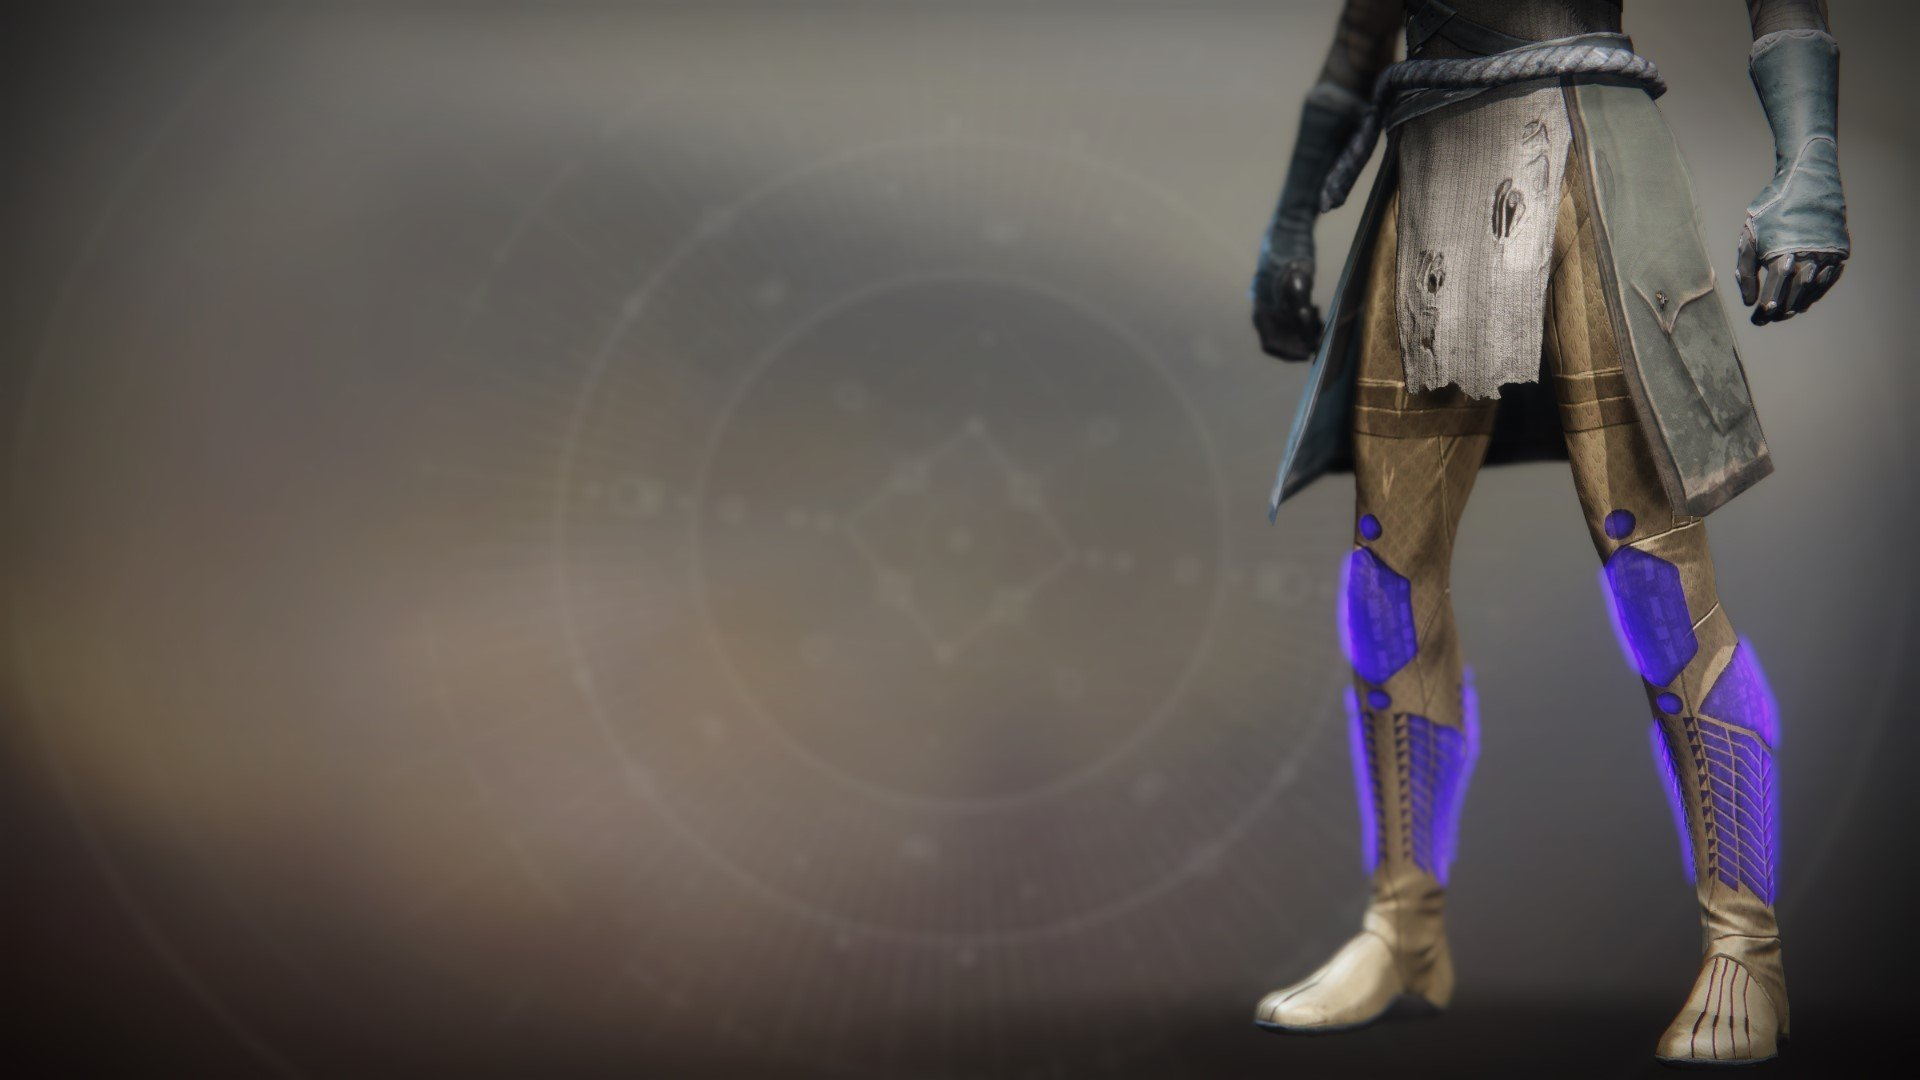 An in-game render of the Boots of the Emperor's Minister.